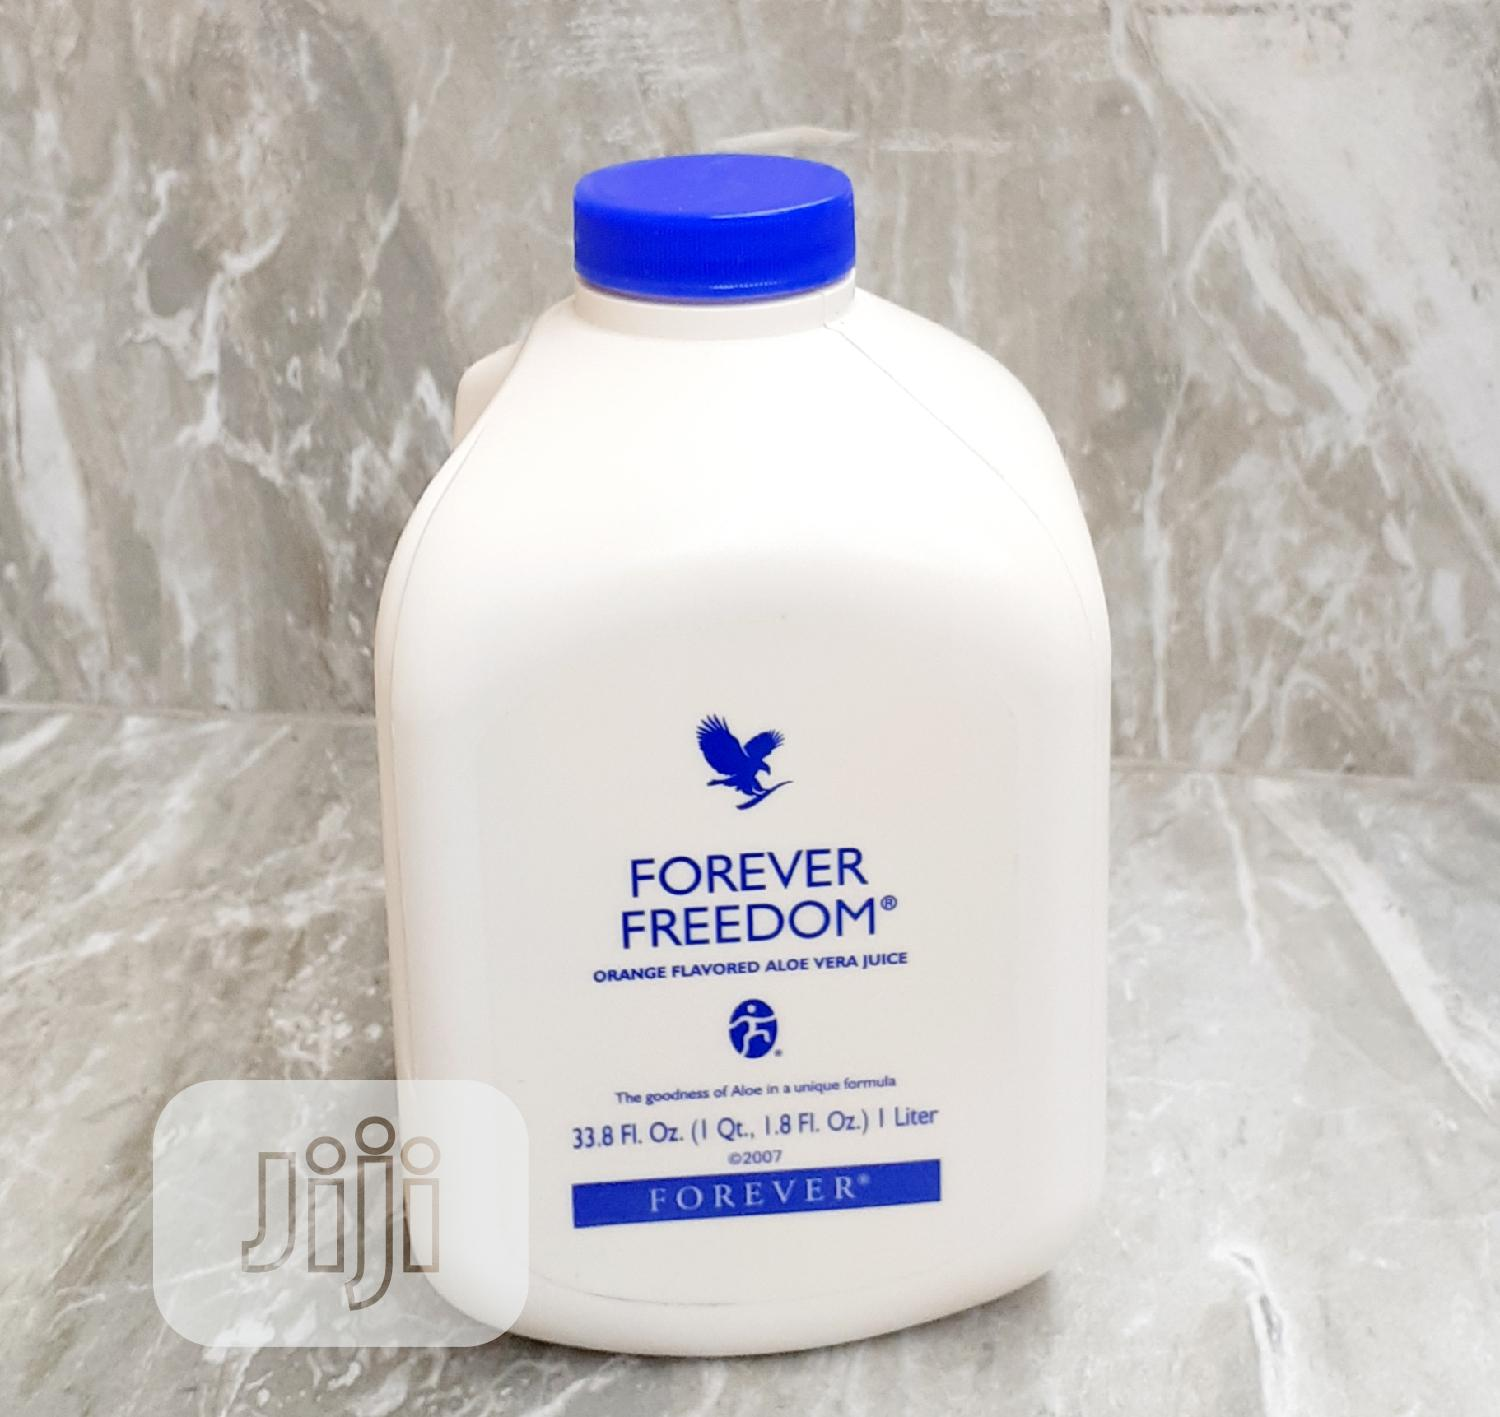 Forever Freedom - Fast Relief From Pains Arthritis